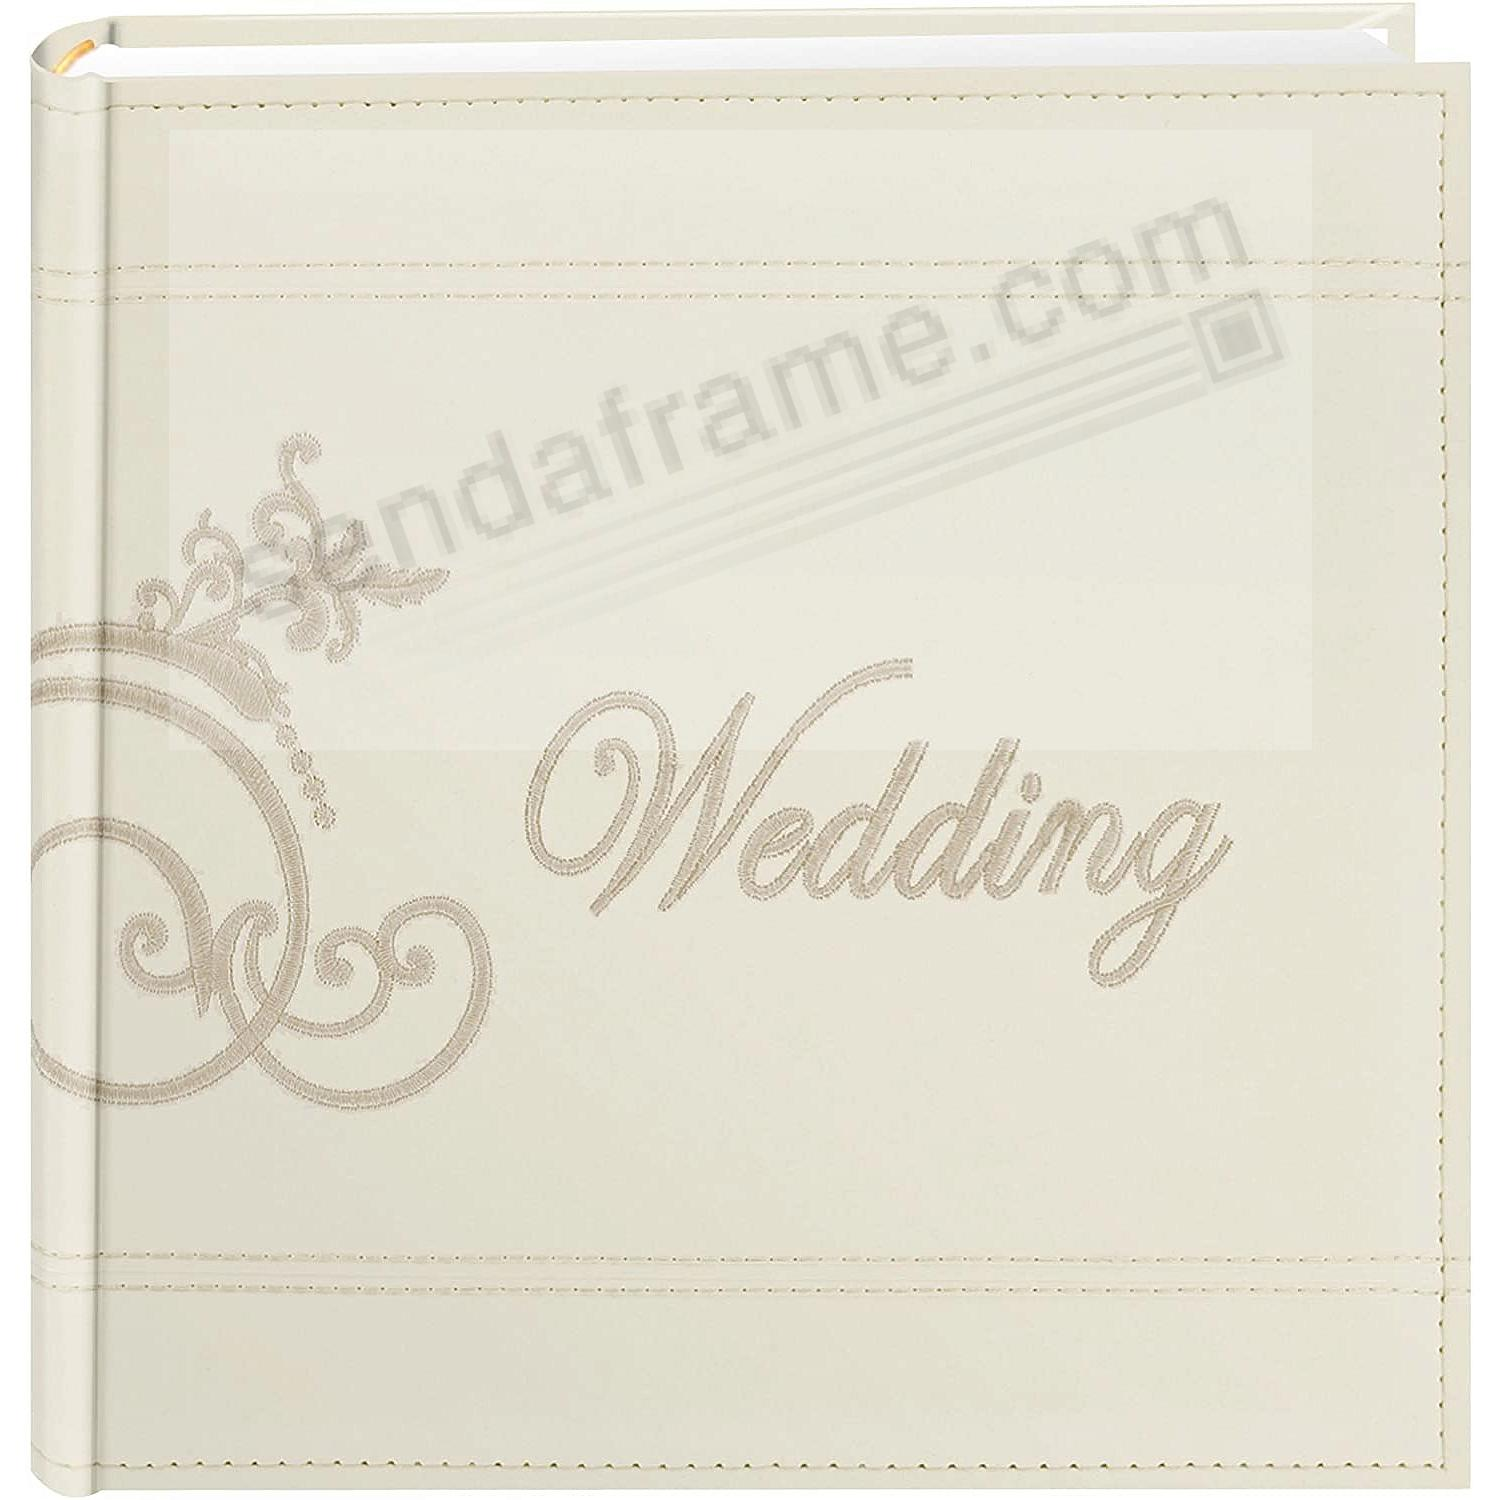 OUR WEDDING Embroidered Wedding Photo Album by Pioneer® holds 200 4x6 photos